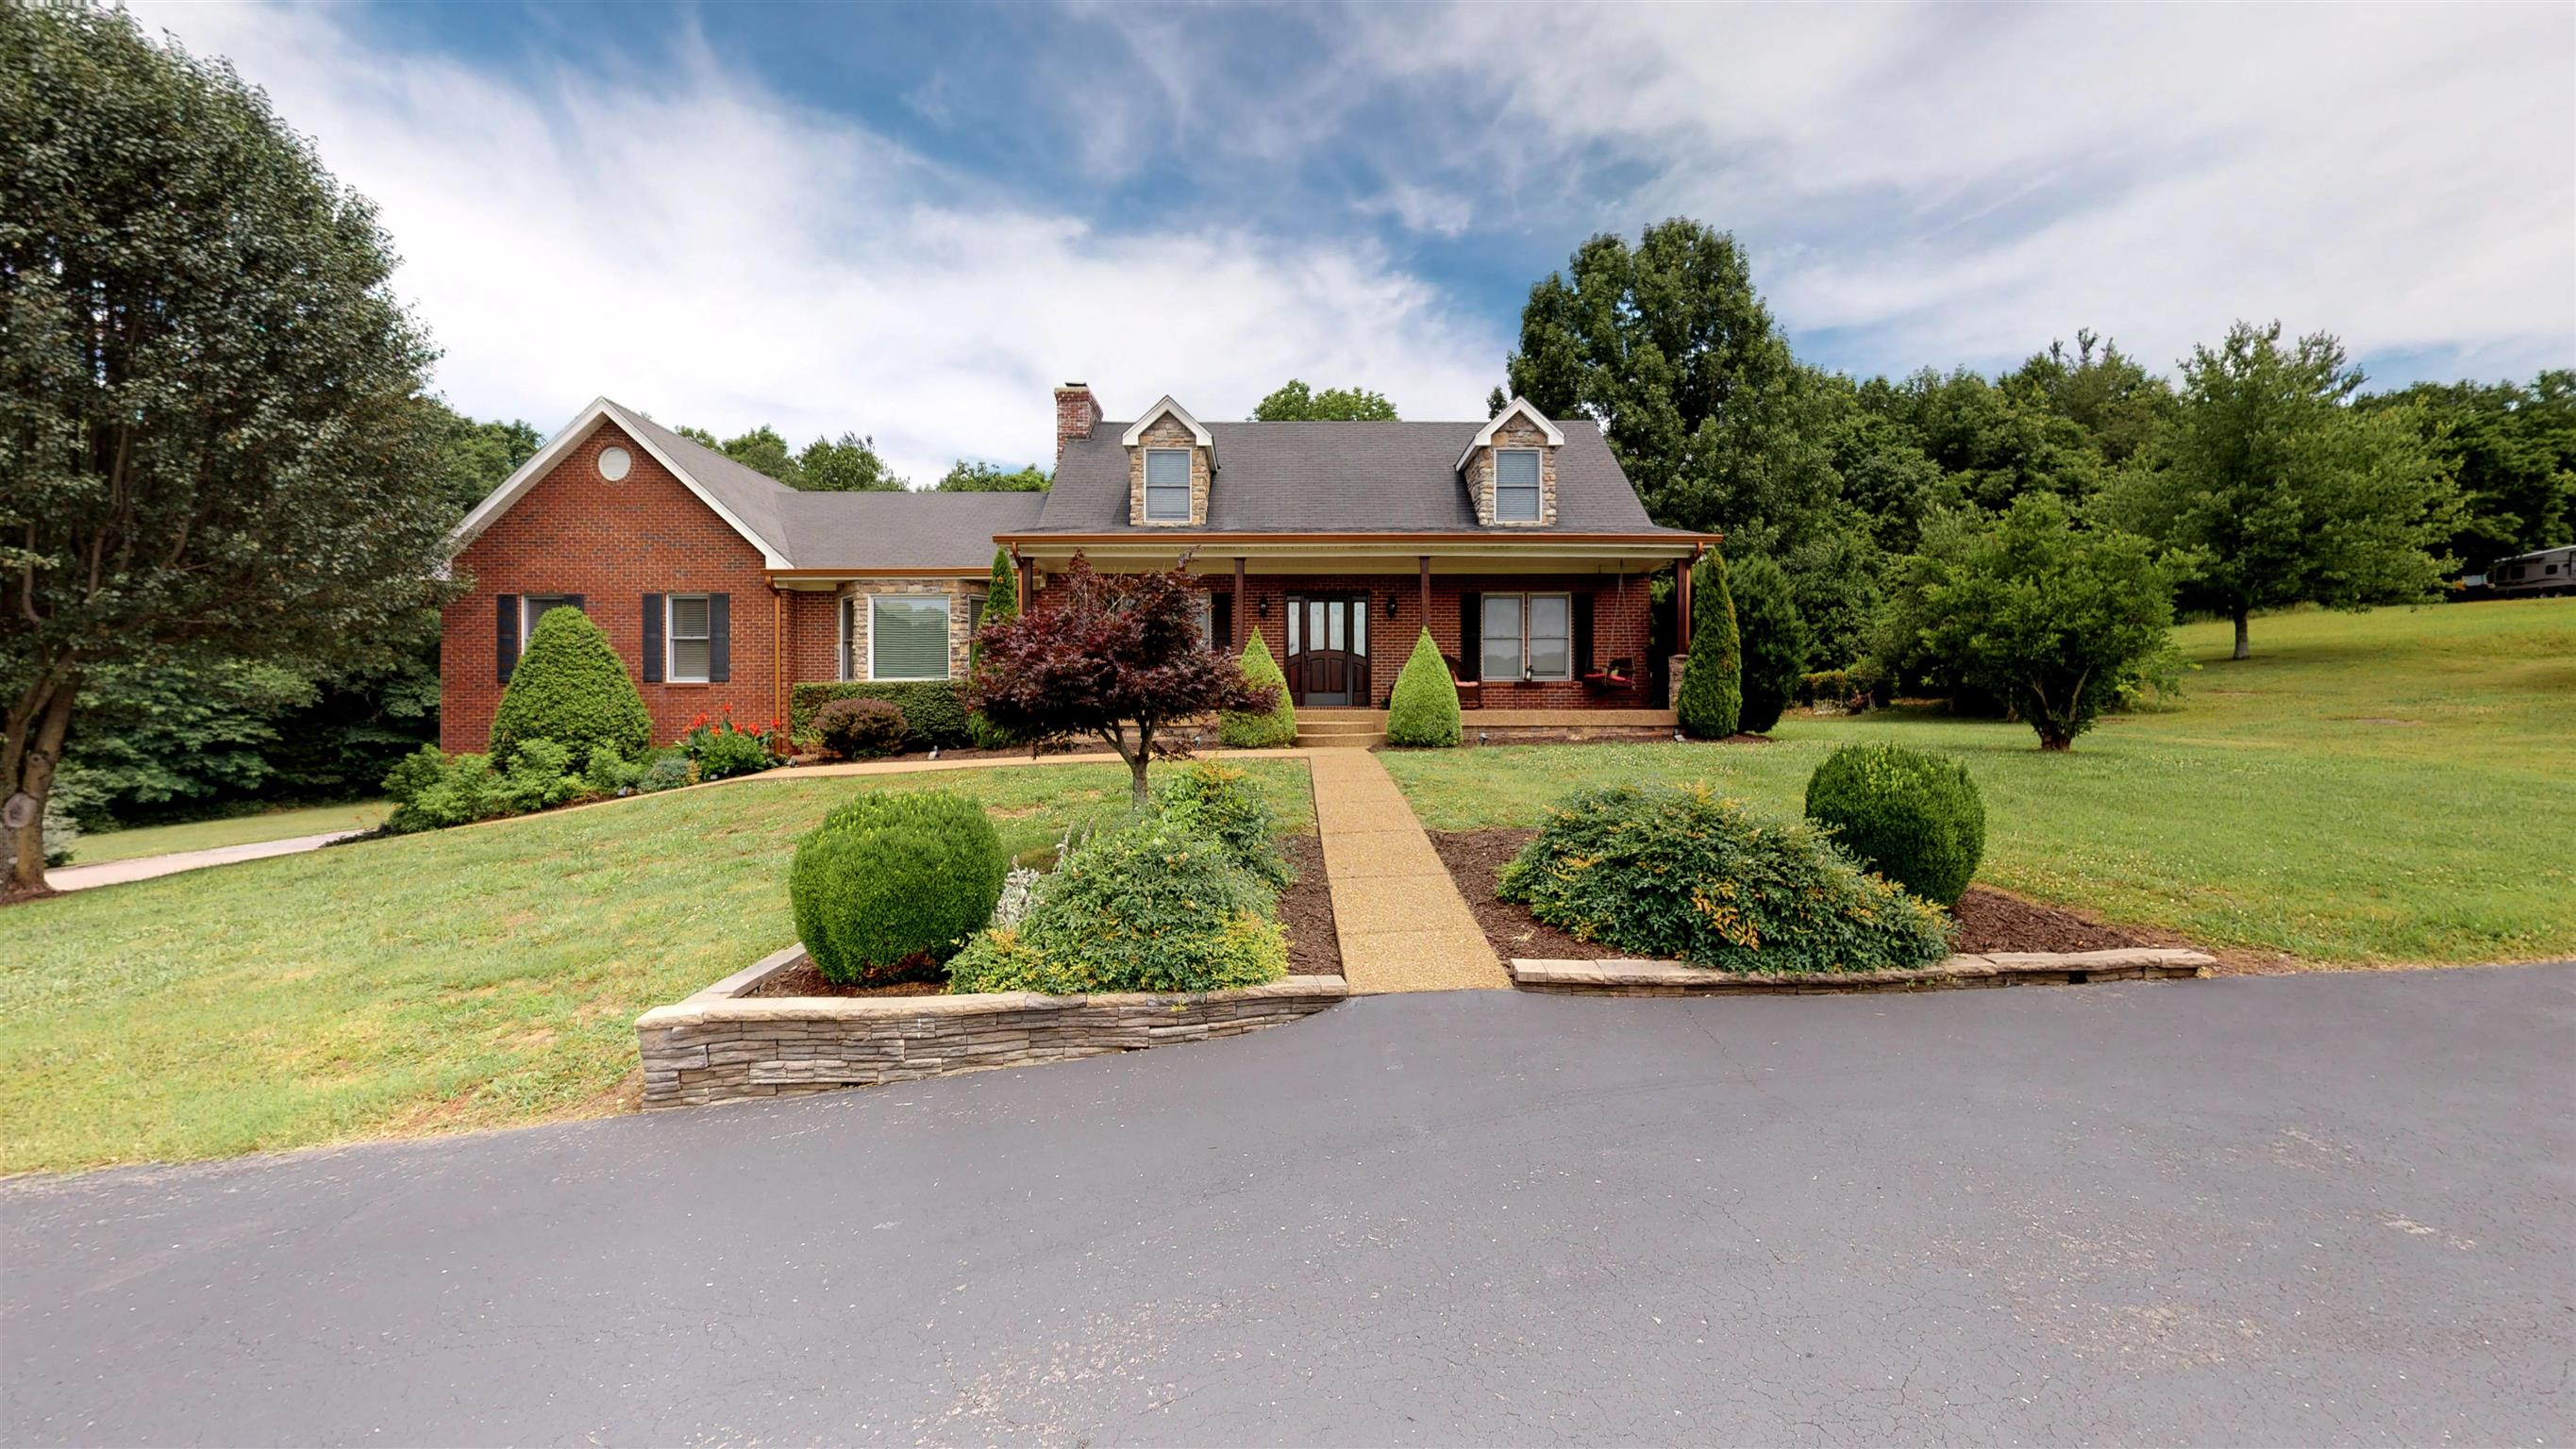 2946 Beulah Church Rd, Arrington, TN 37014 - Arrington, TN real estate listing